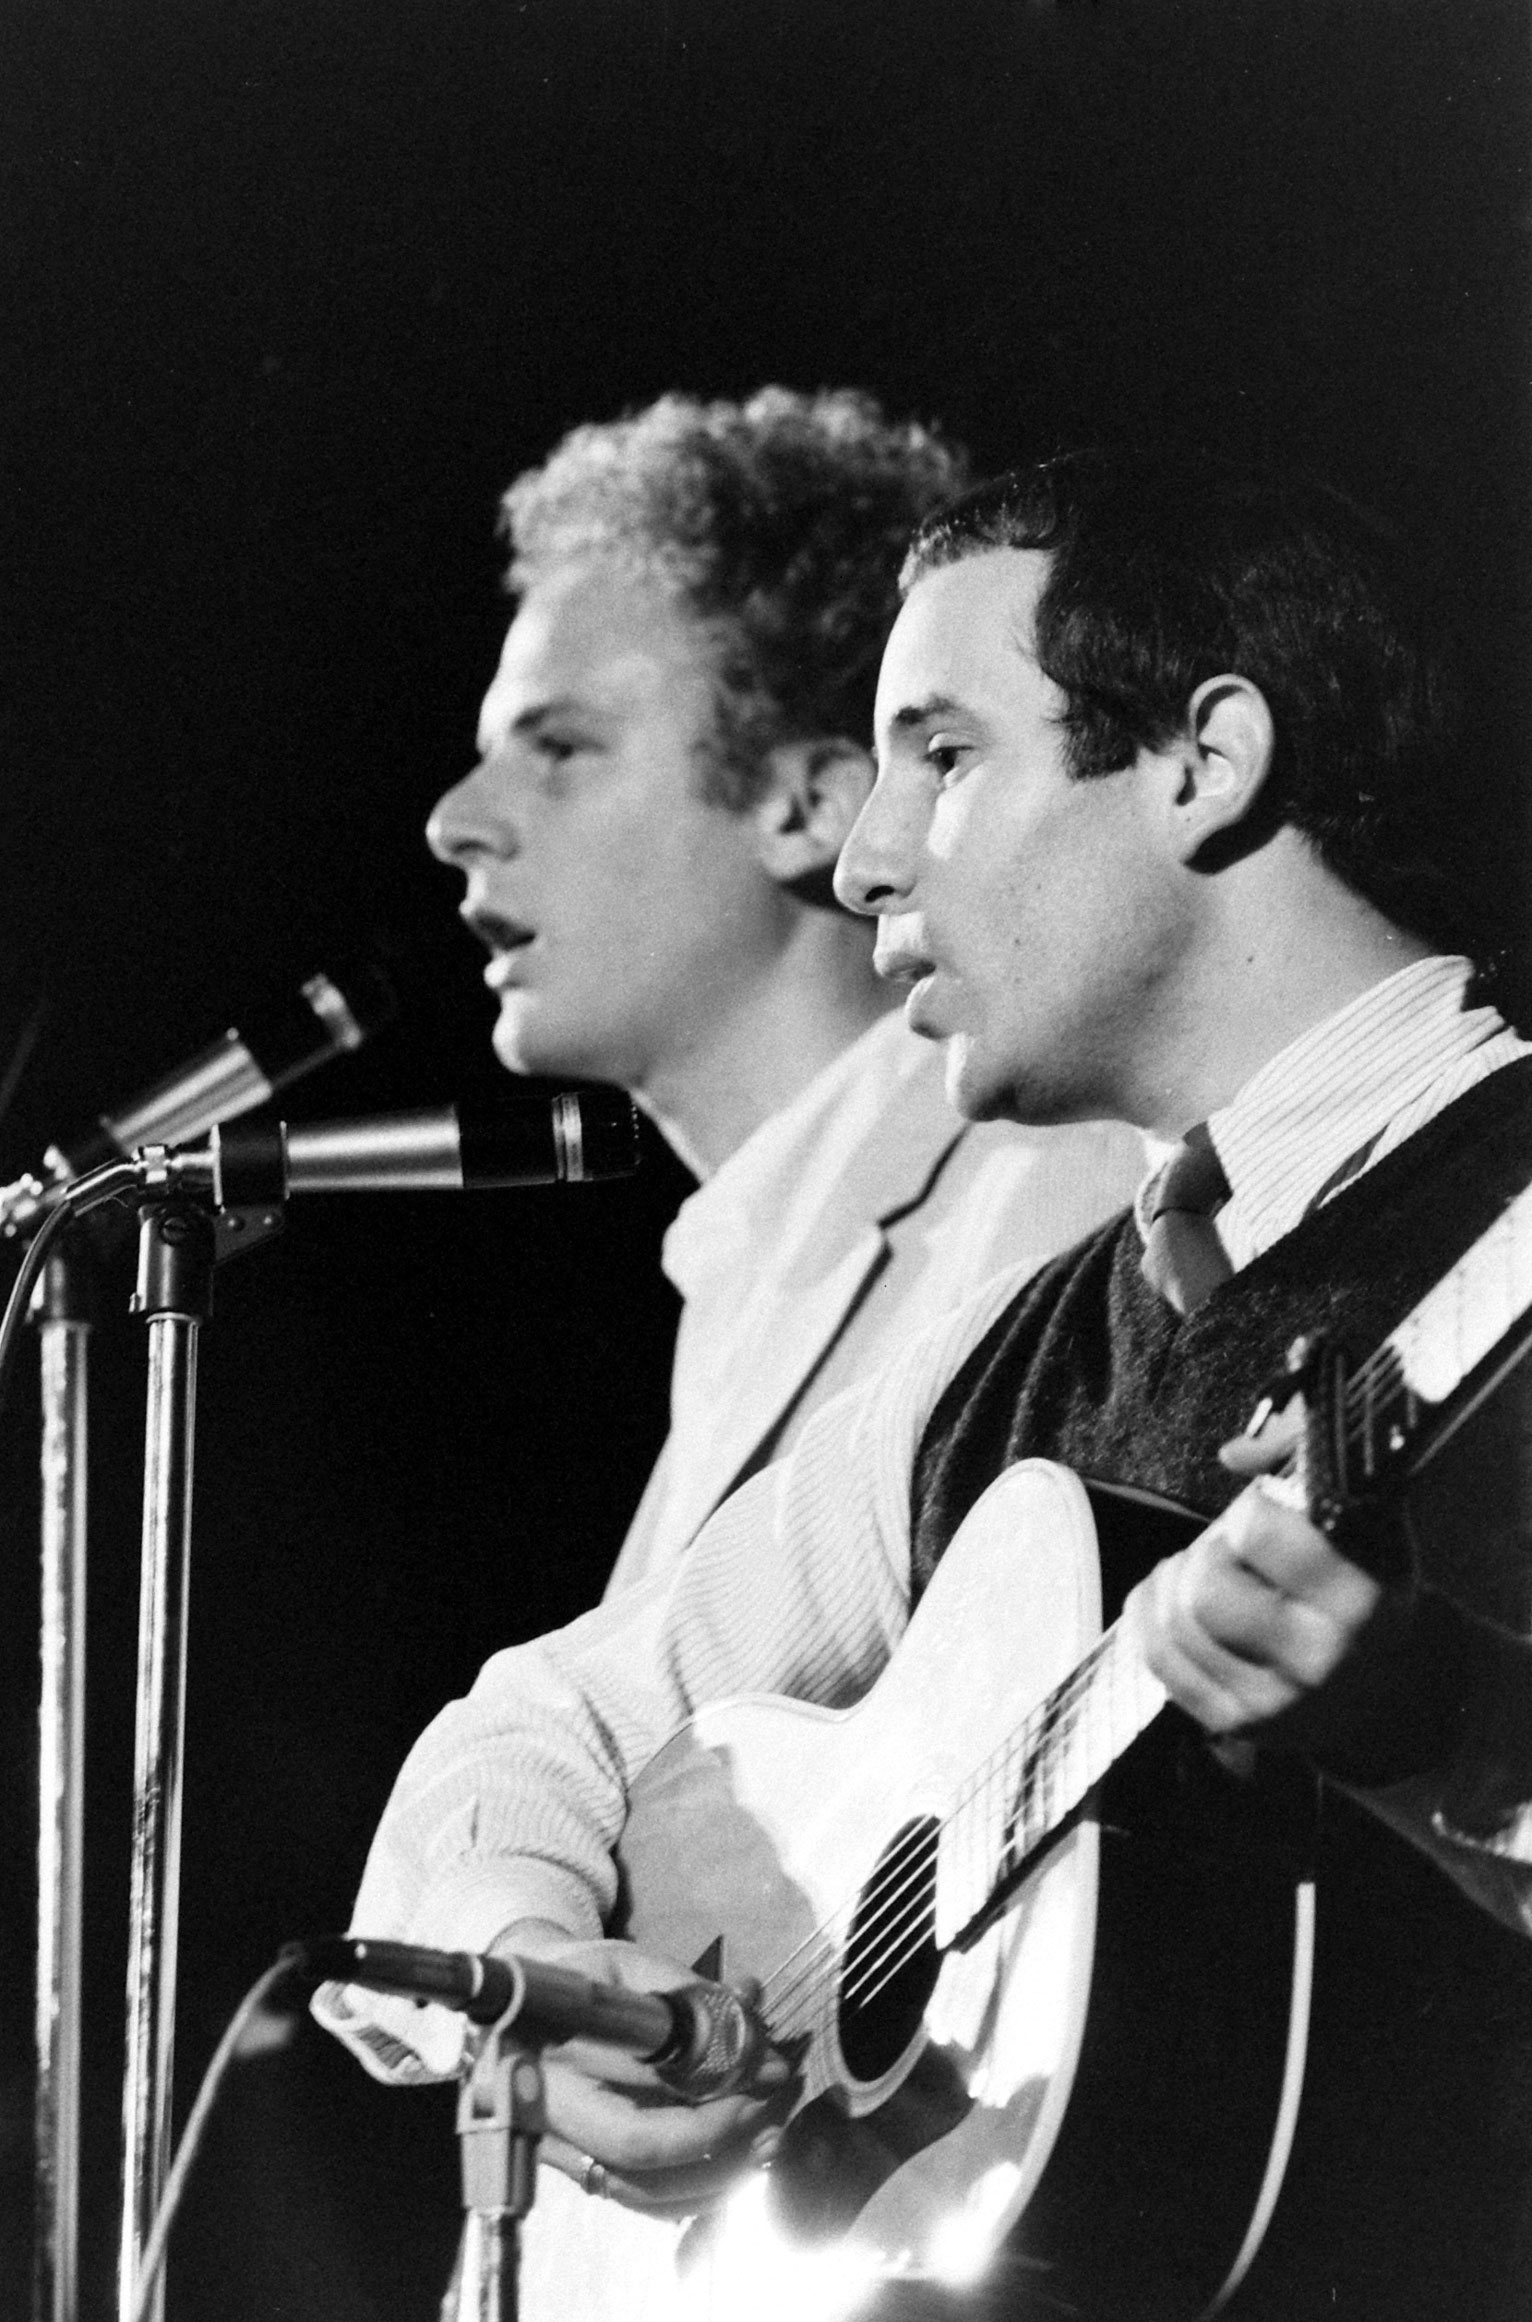 Simon and Garfunkel have collected nine Grammys and a Lifetime Achievement Award. Pictured here performing in Philadelphia, 1968.